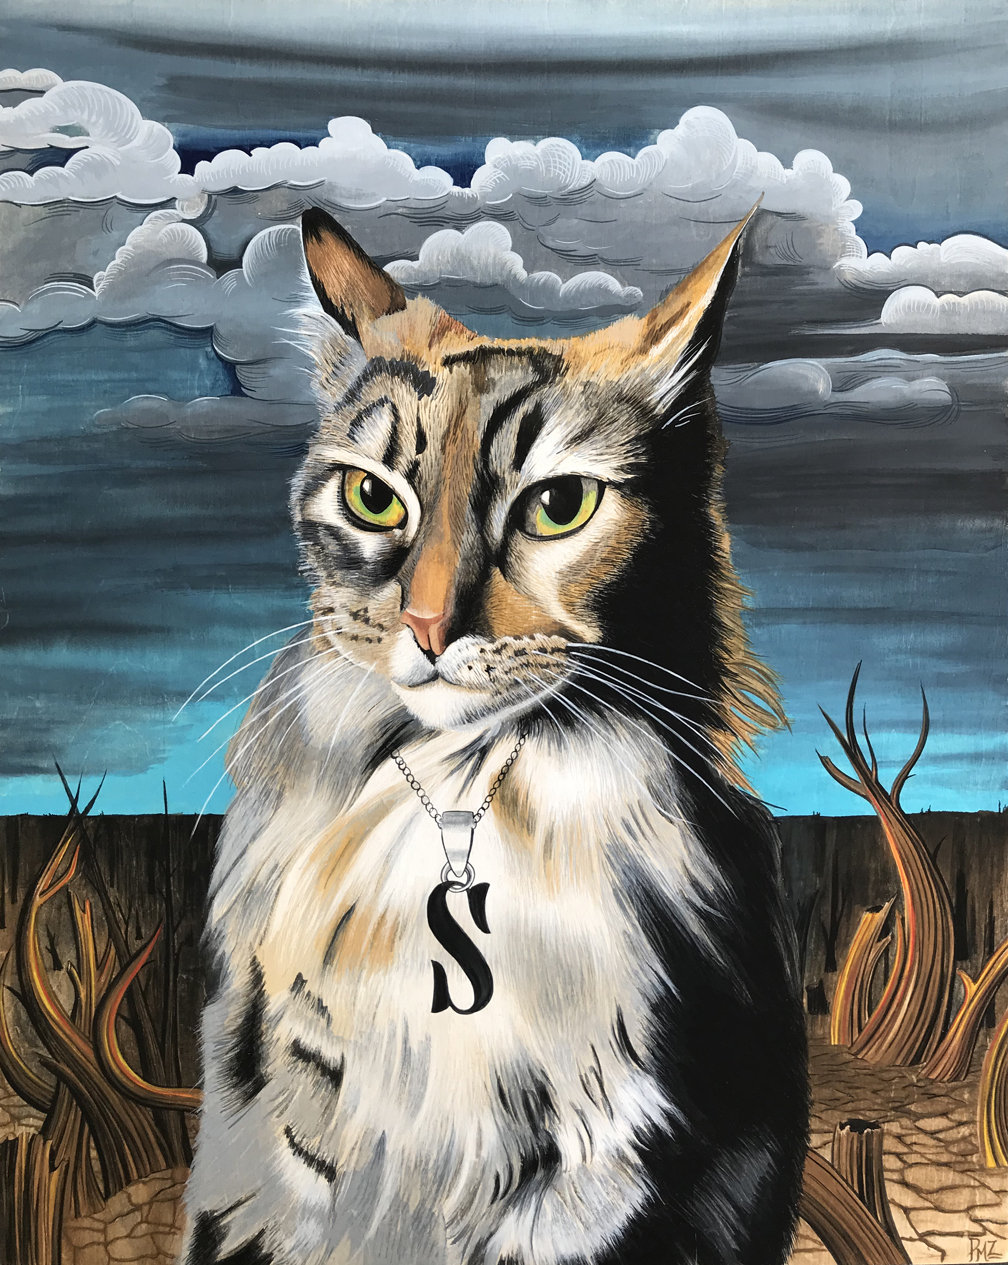 Stormy - A realist/surreal portrait of a rescued cat from the Santa Rosa fires in California.Gouache on wood panel. @2019Patrushka